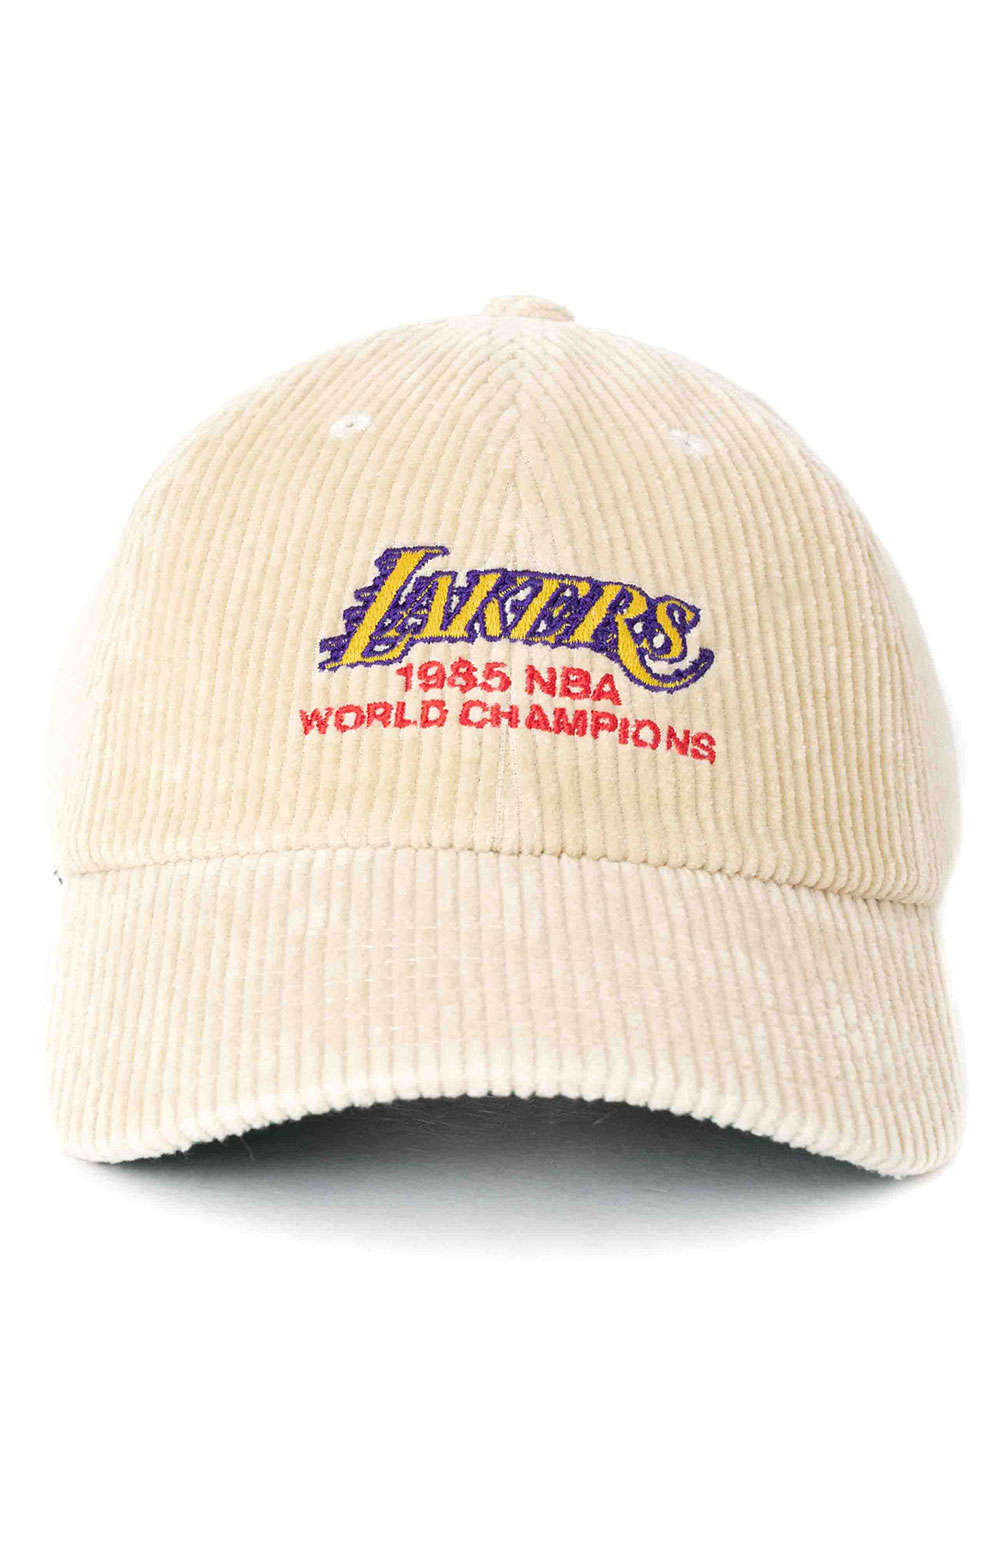 85 World Champs Dad Hat - Lakers  2